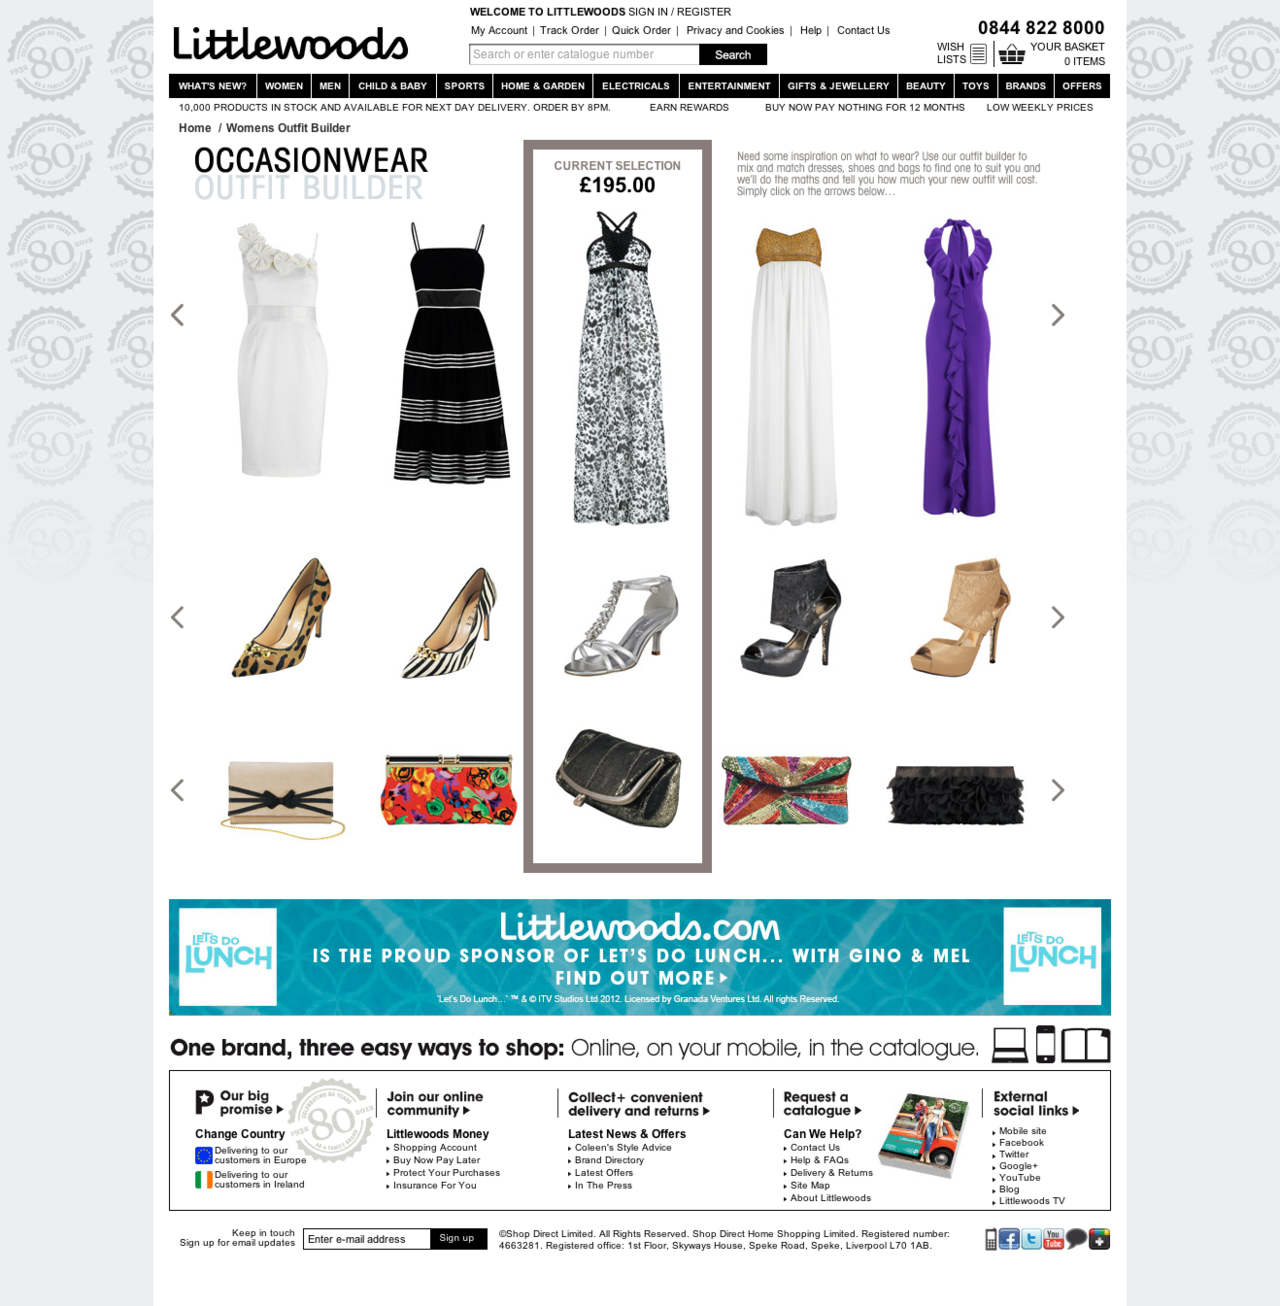 http://www.littlewoods.com/web/en/outfit-builder.page